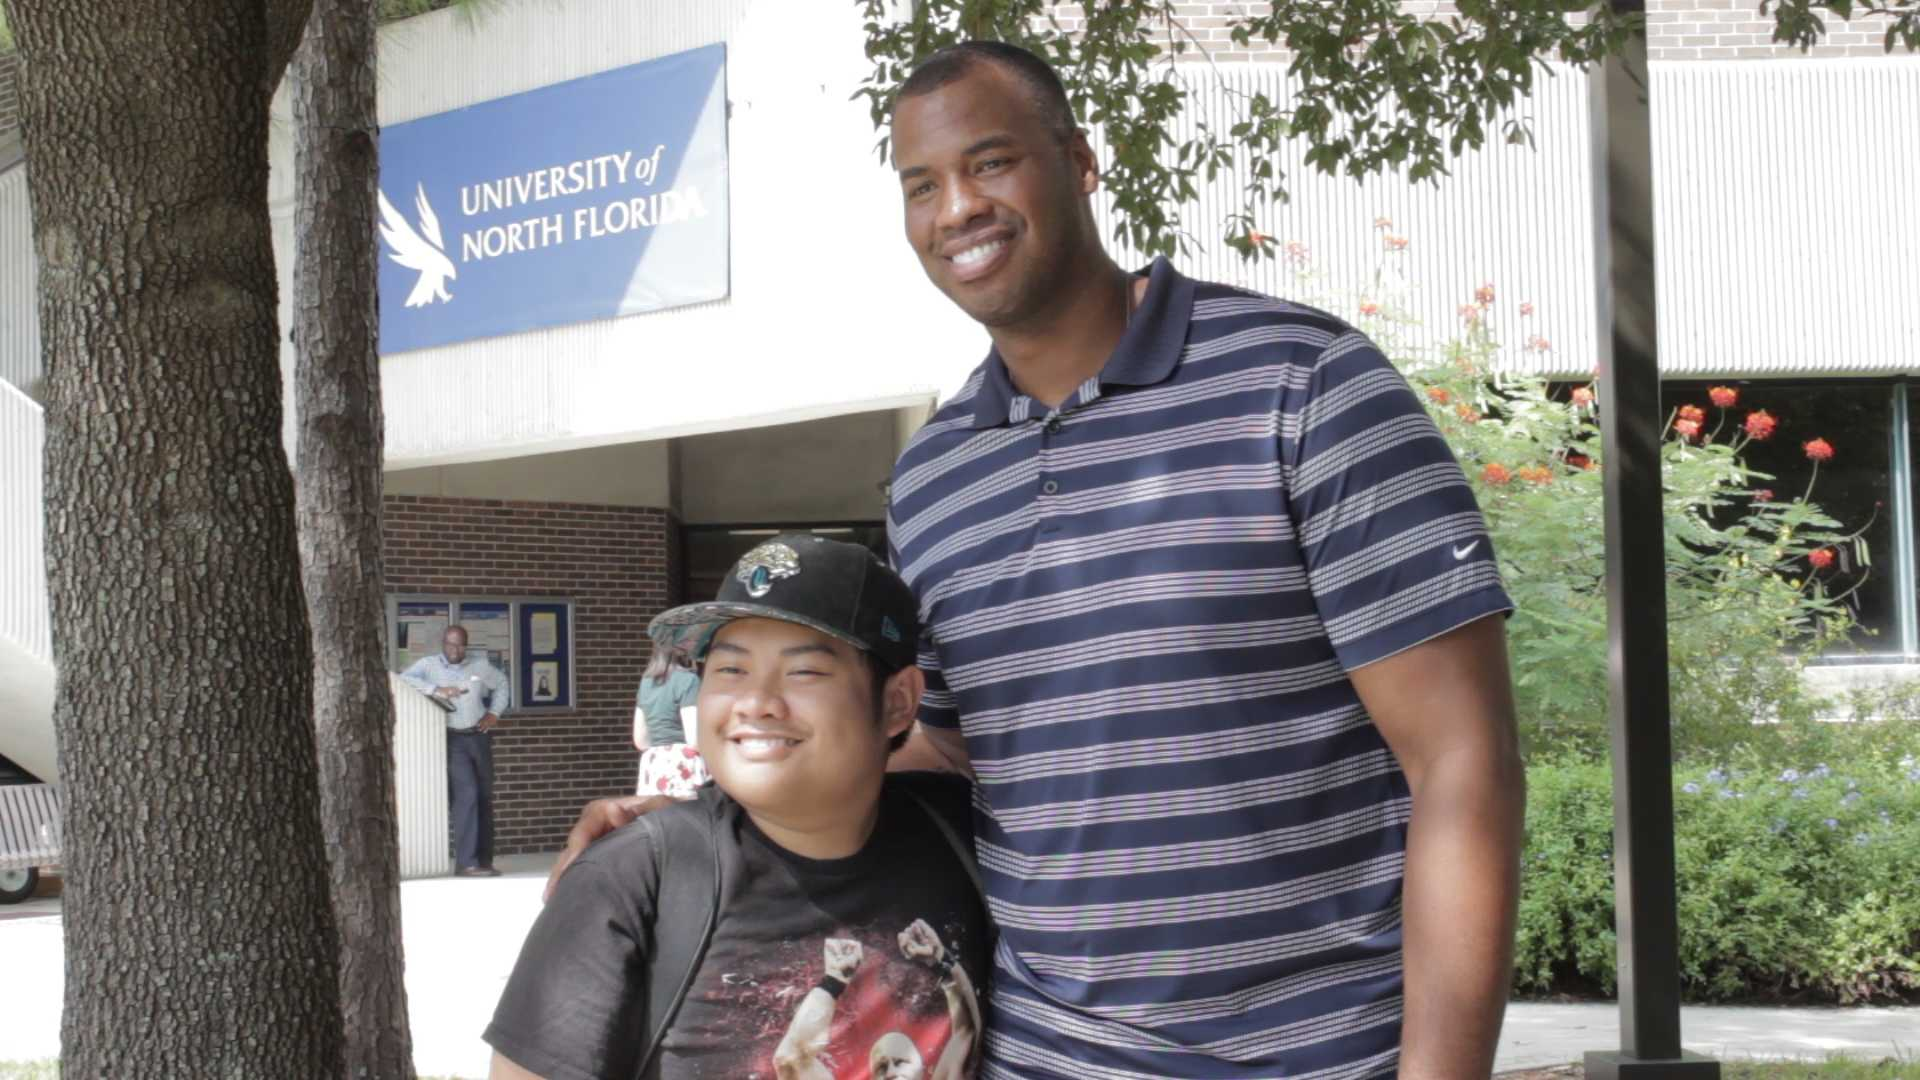 First openly gay NBA player Jason Collins stops by UNF